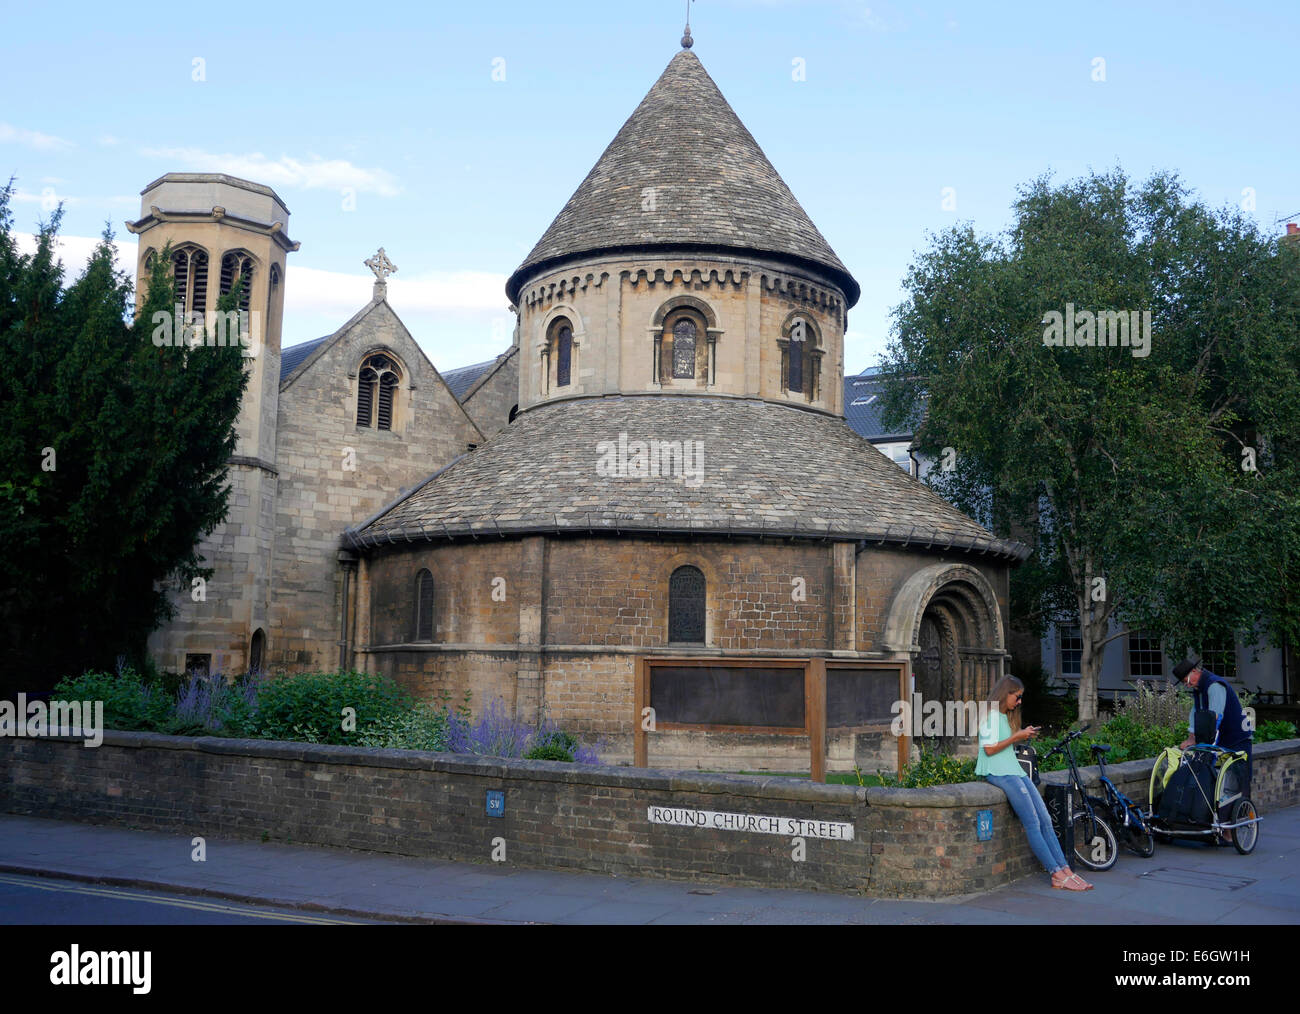 The Church of the Holy Sepulchre, Round Church Street Cambridge England - Stock Image